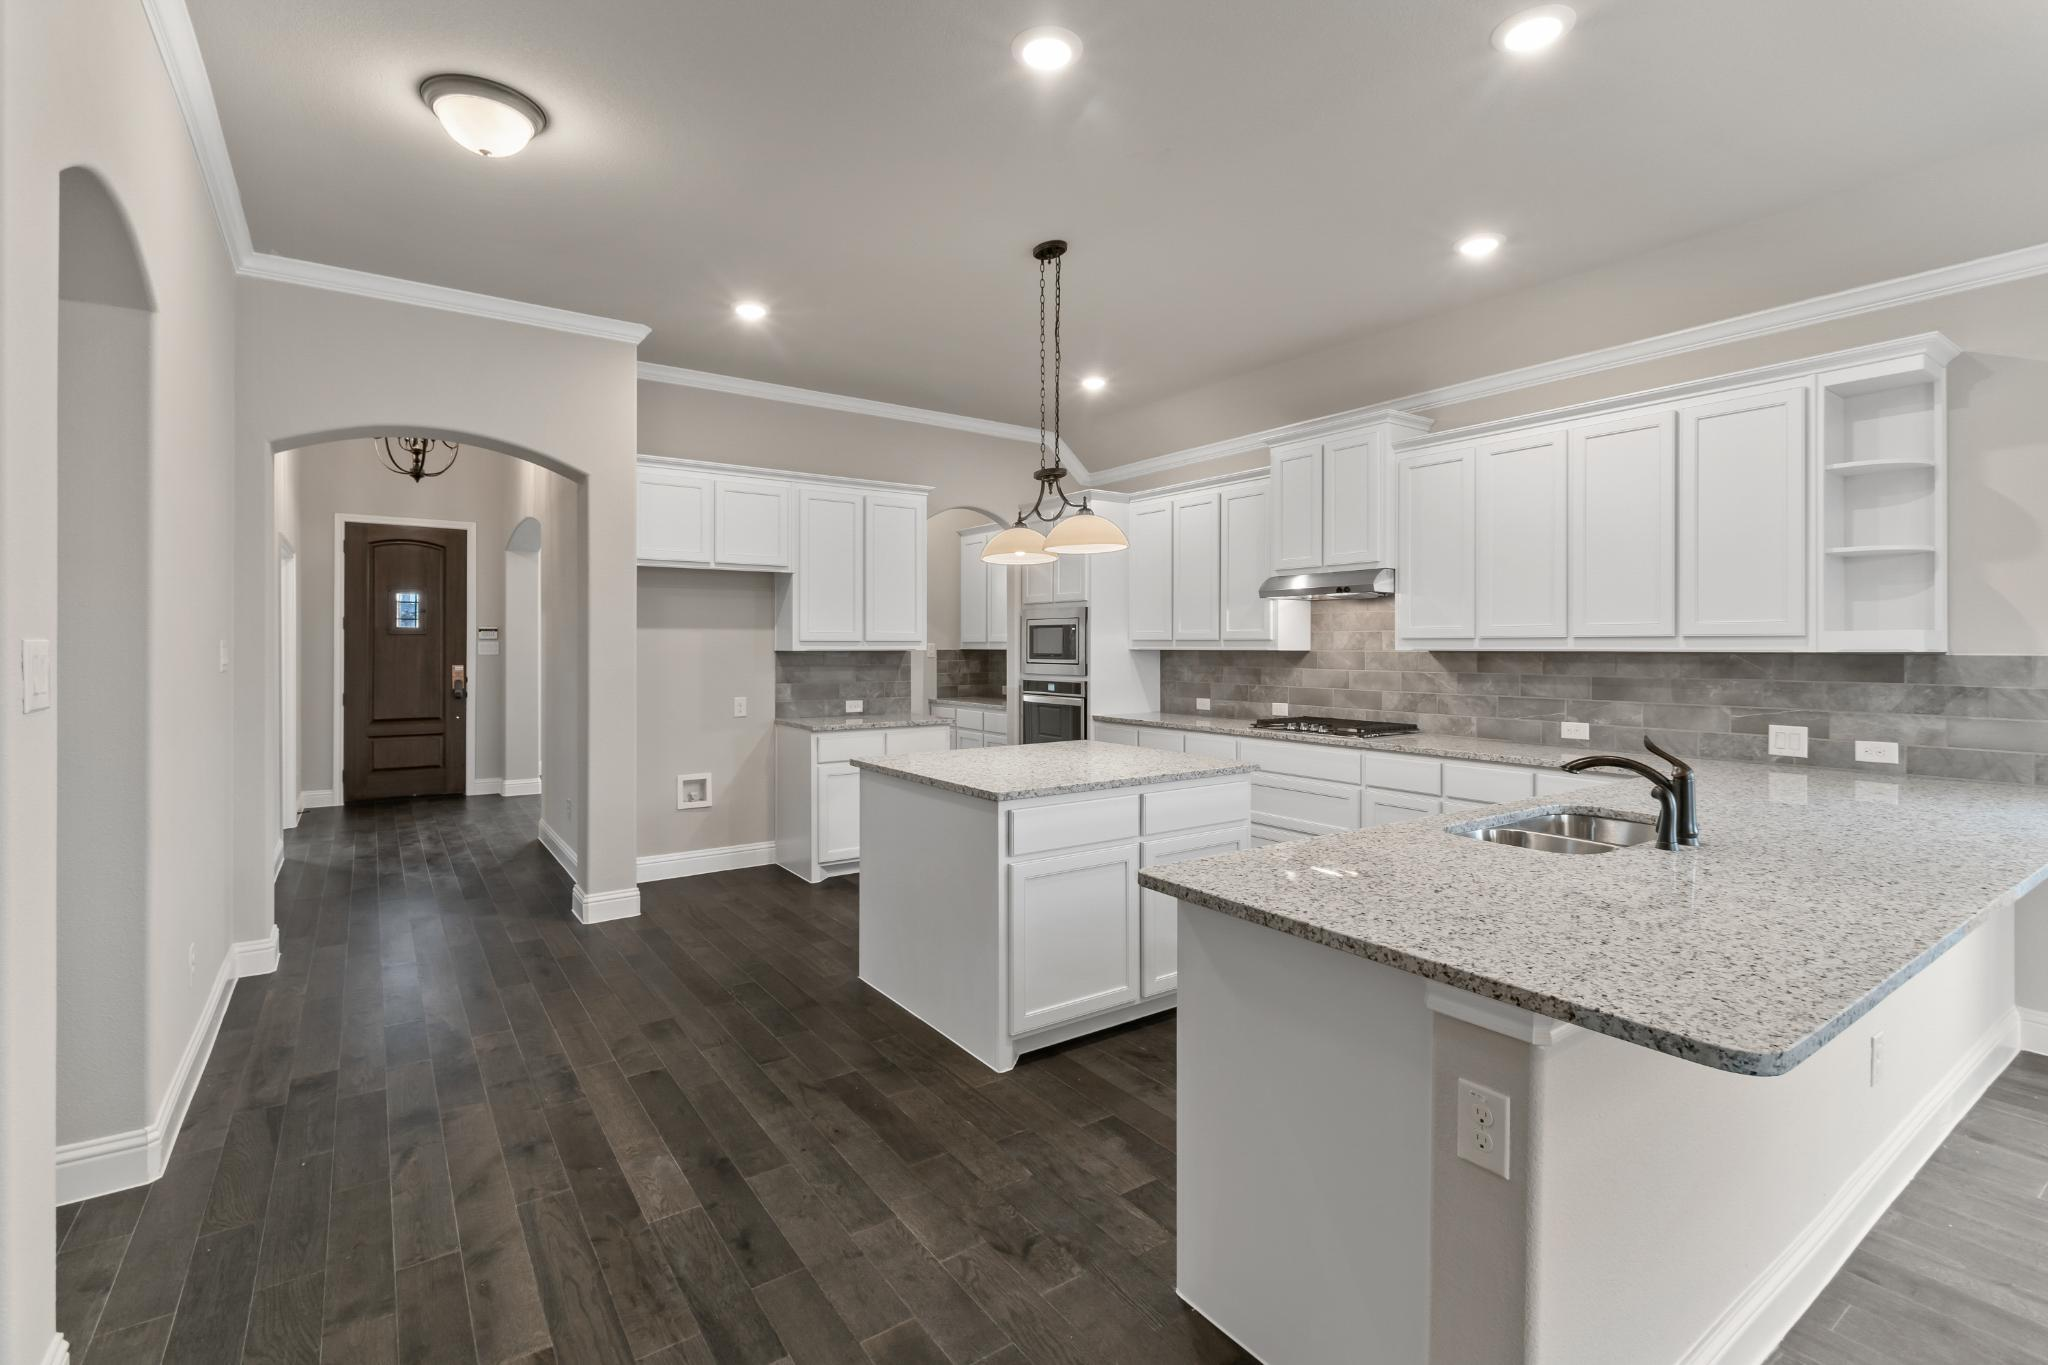 Kitchen featured in the 2533 By Antares Homes in Dallas, TX